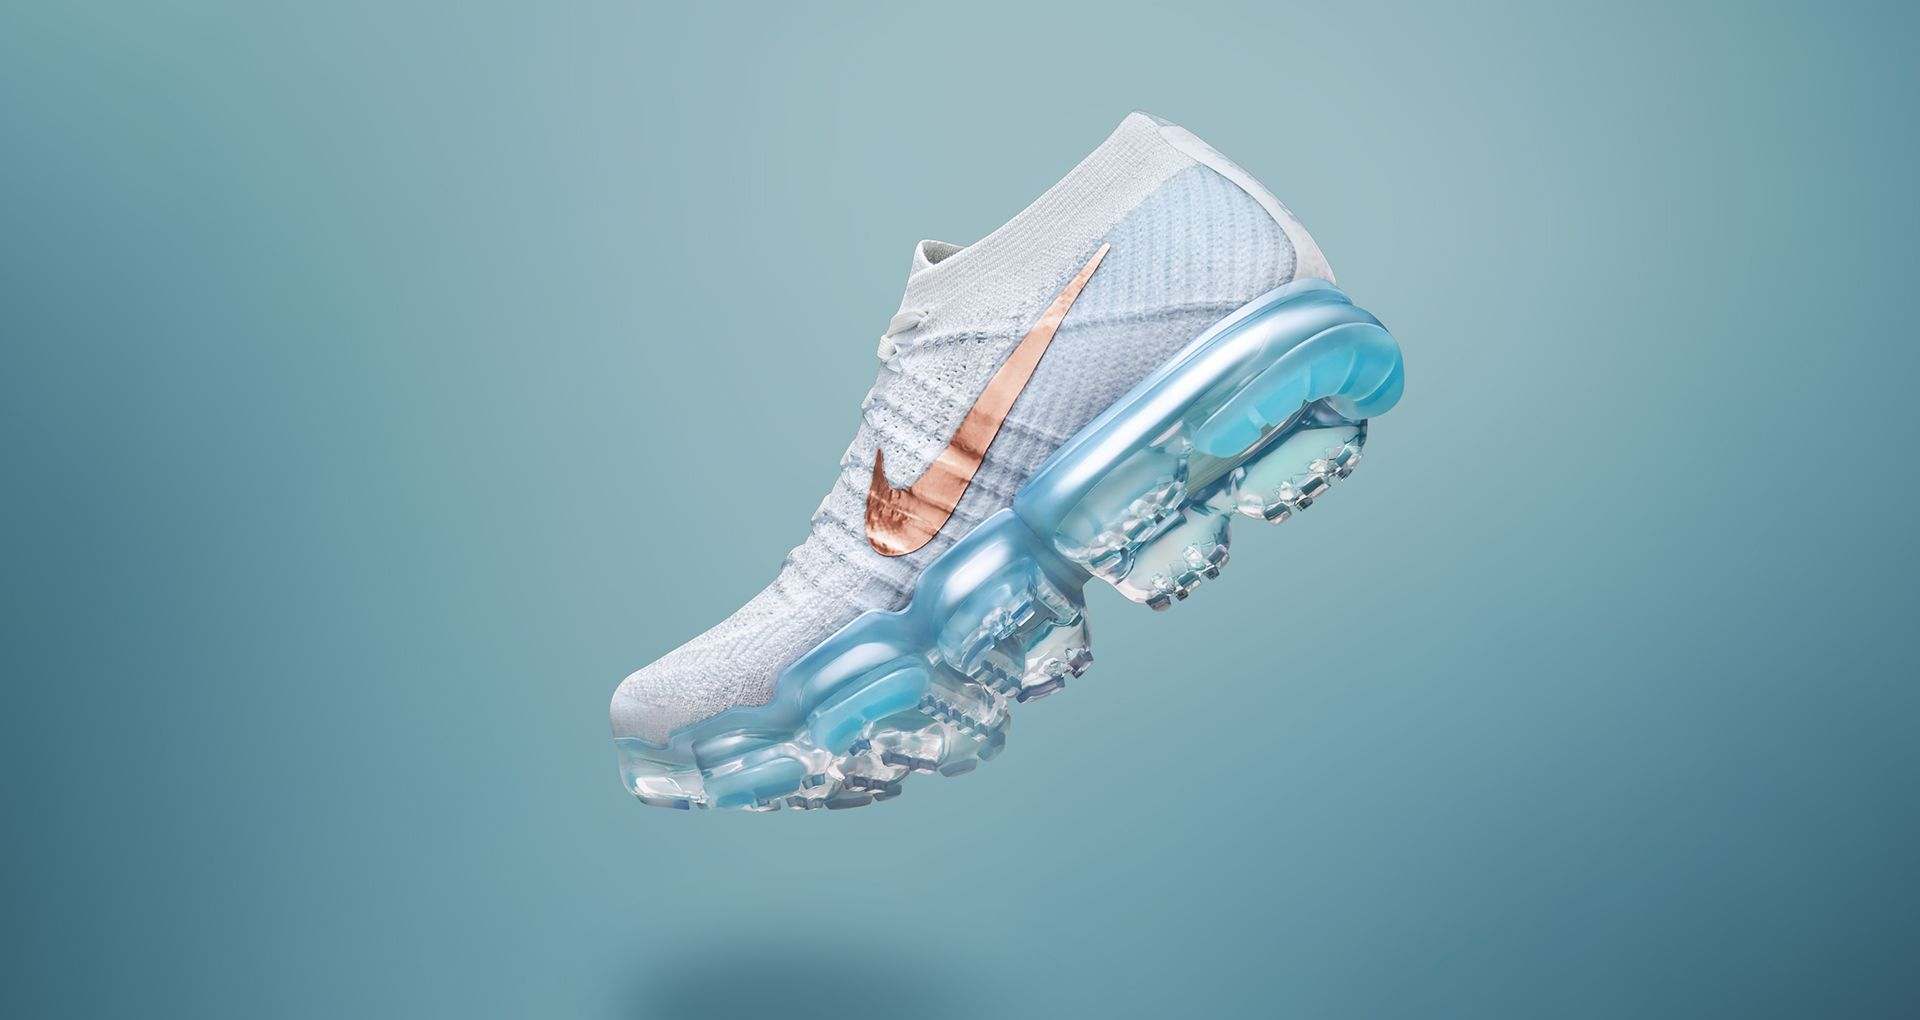 77405cd8089 Women s Nike Air VaporMax Flyknit  Summit White   Hydrogen Blue ...